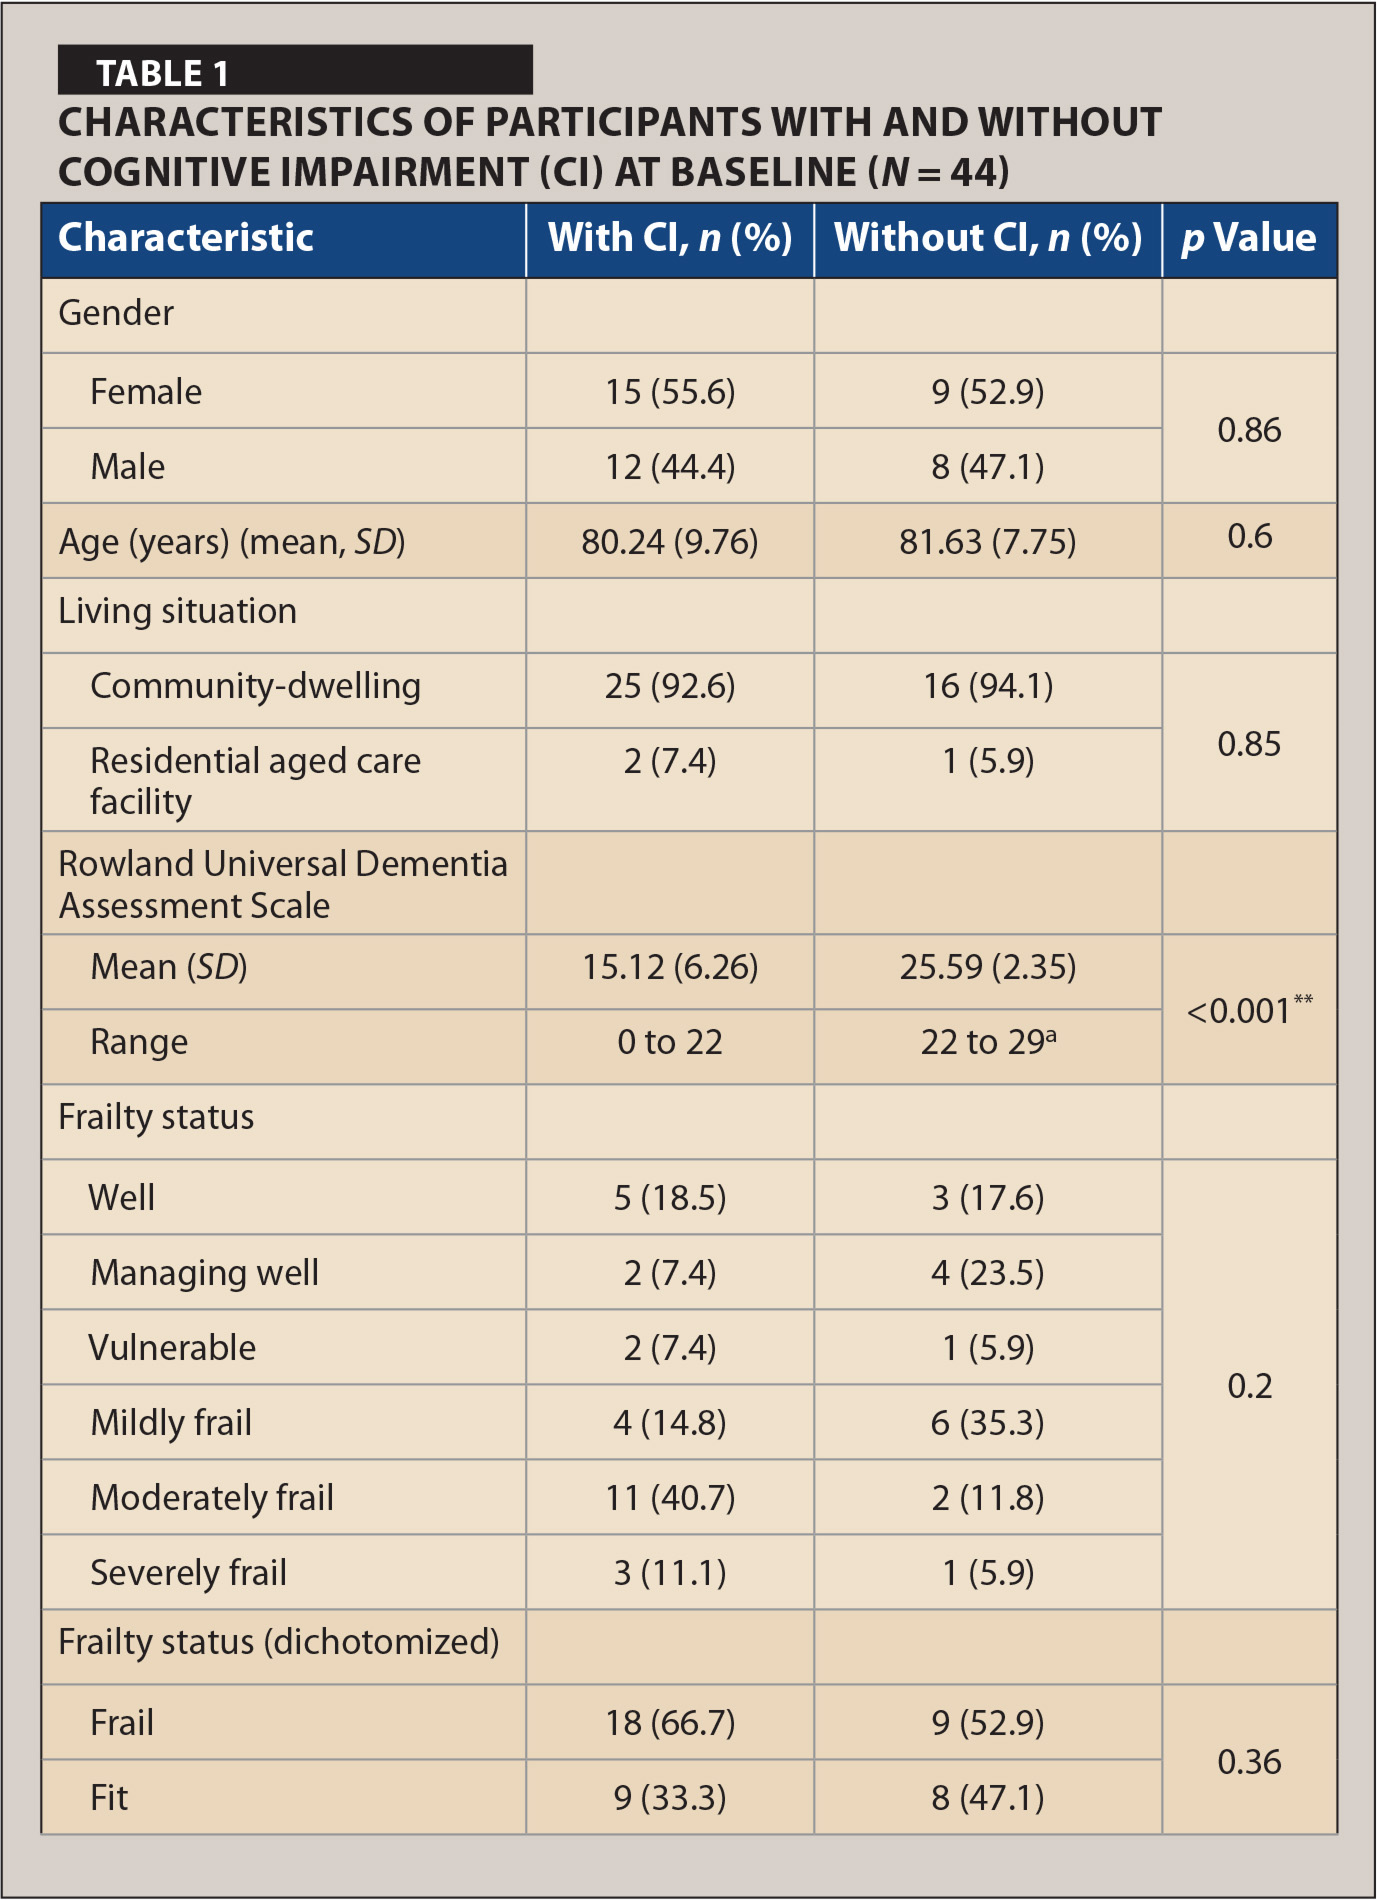 Characteristics of Participants With and Without Cognitive Impairment (CI) At Baseline (N = 44)